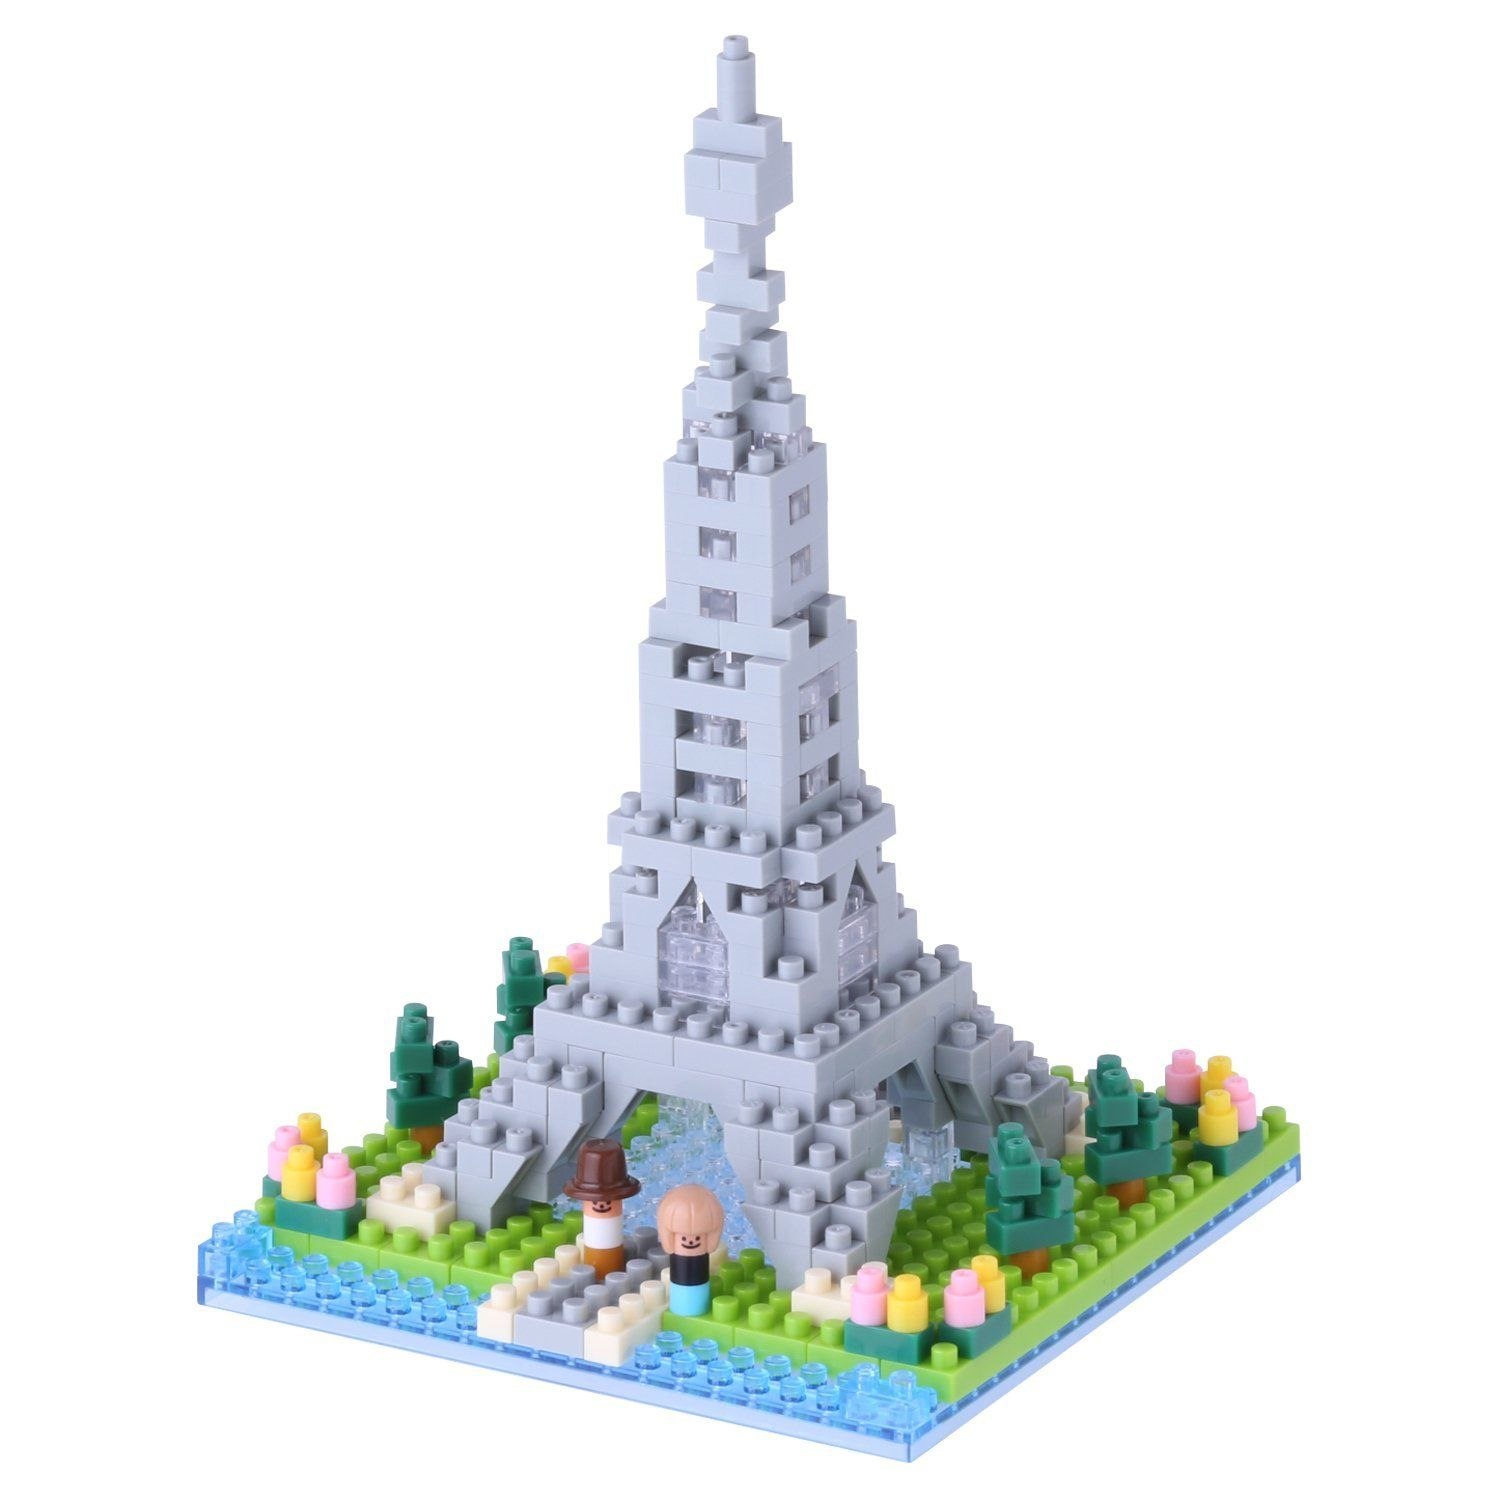 Eiffel Tower Building Set by Nanoblock (NBH097) by nanoblock